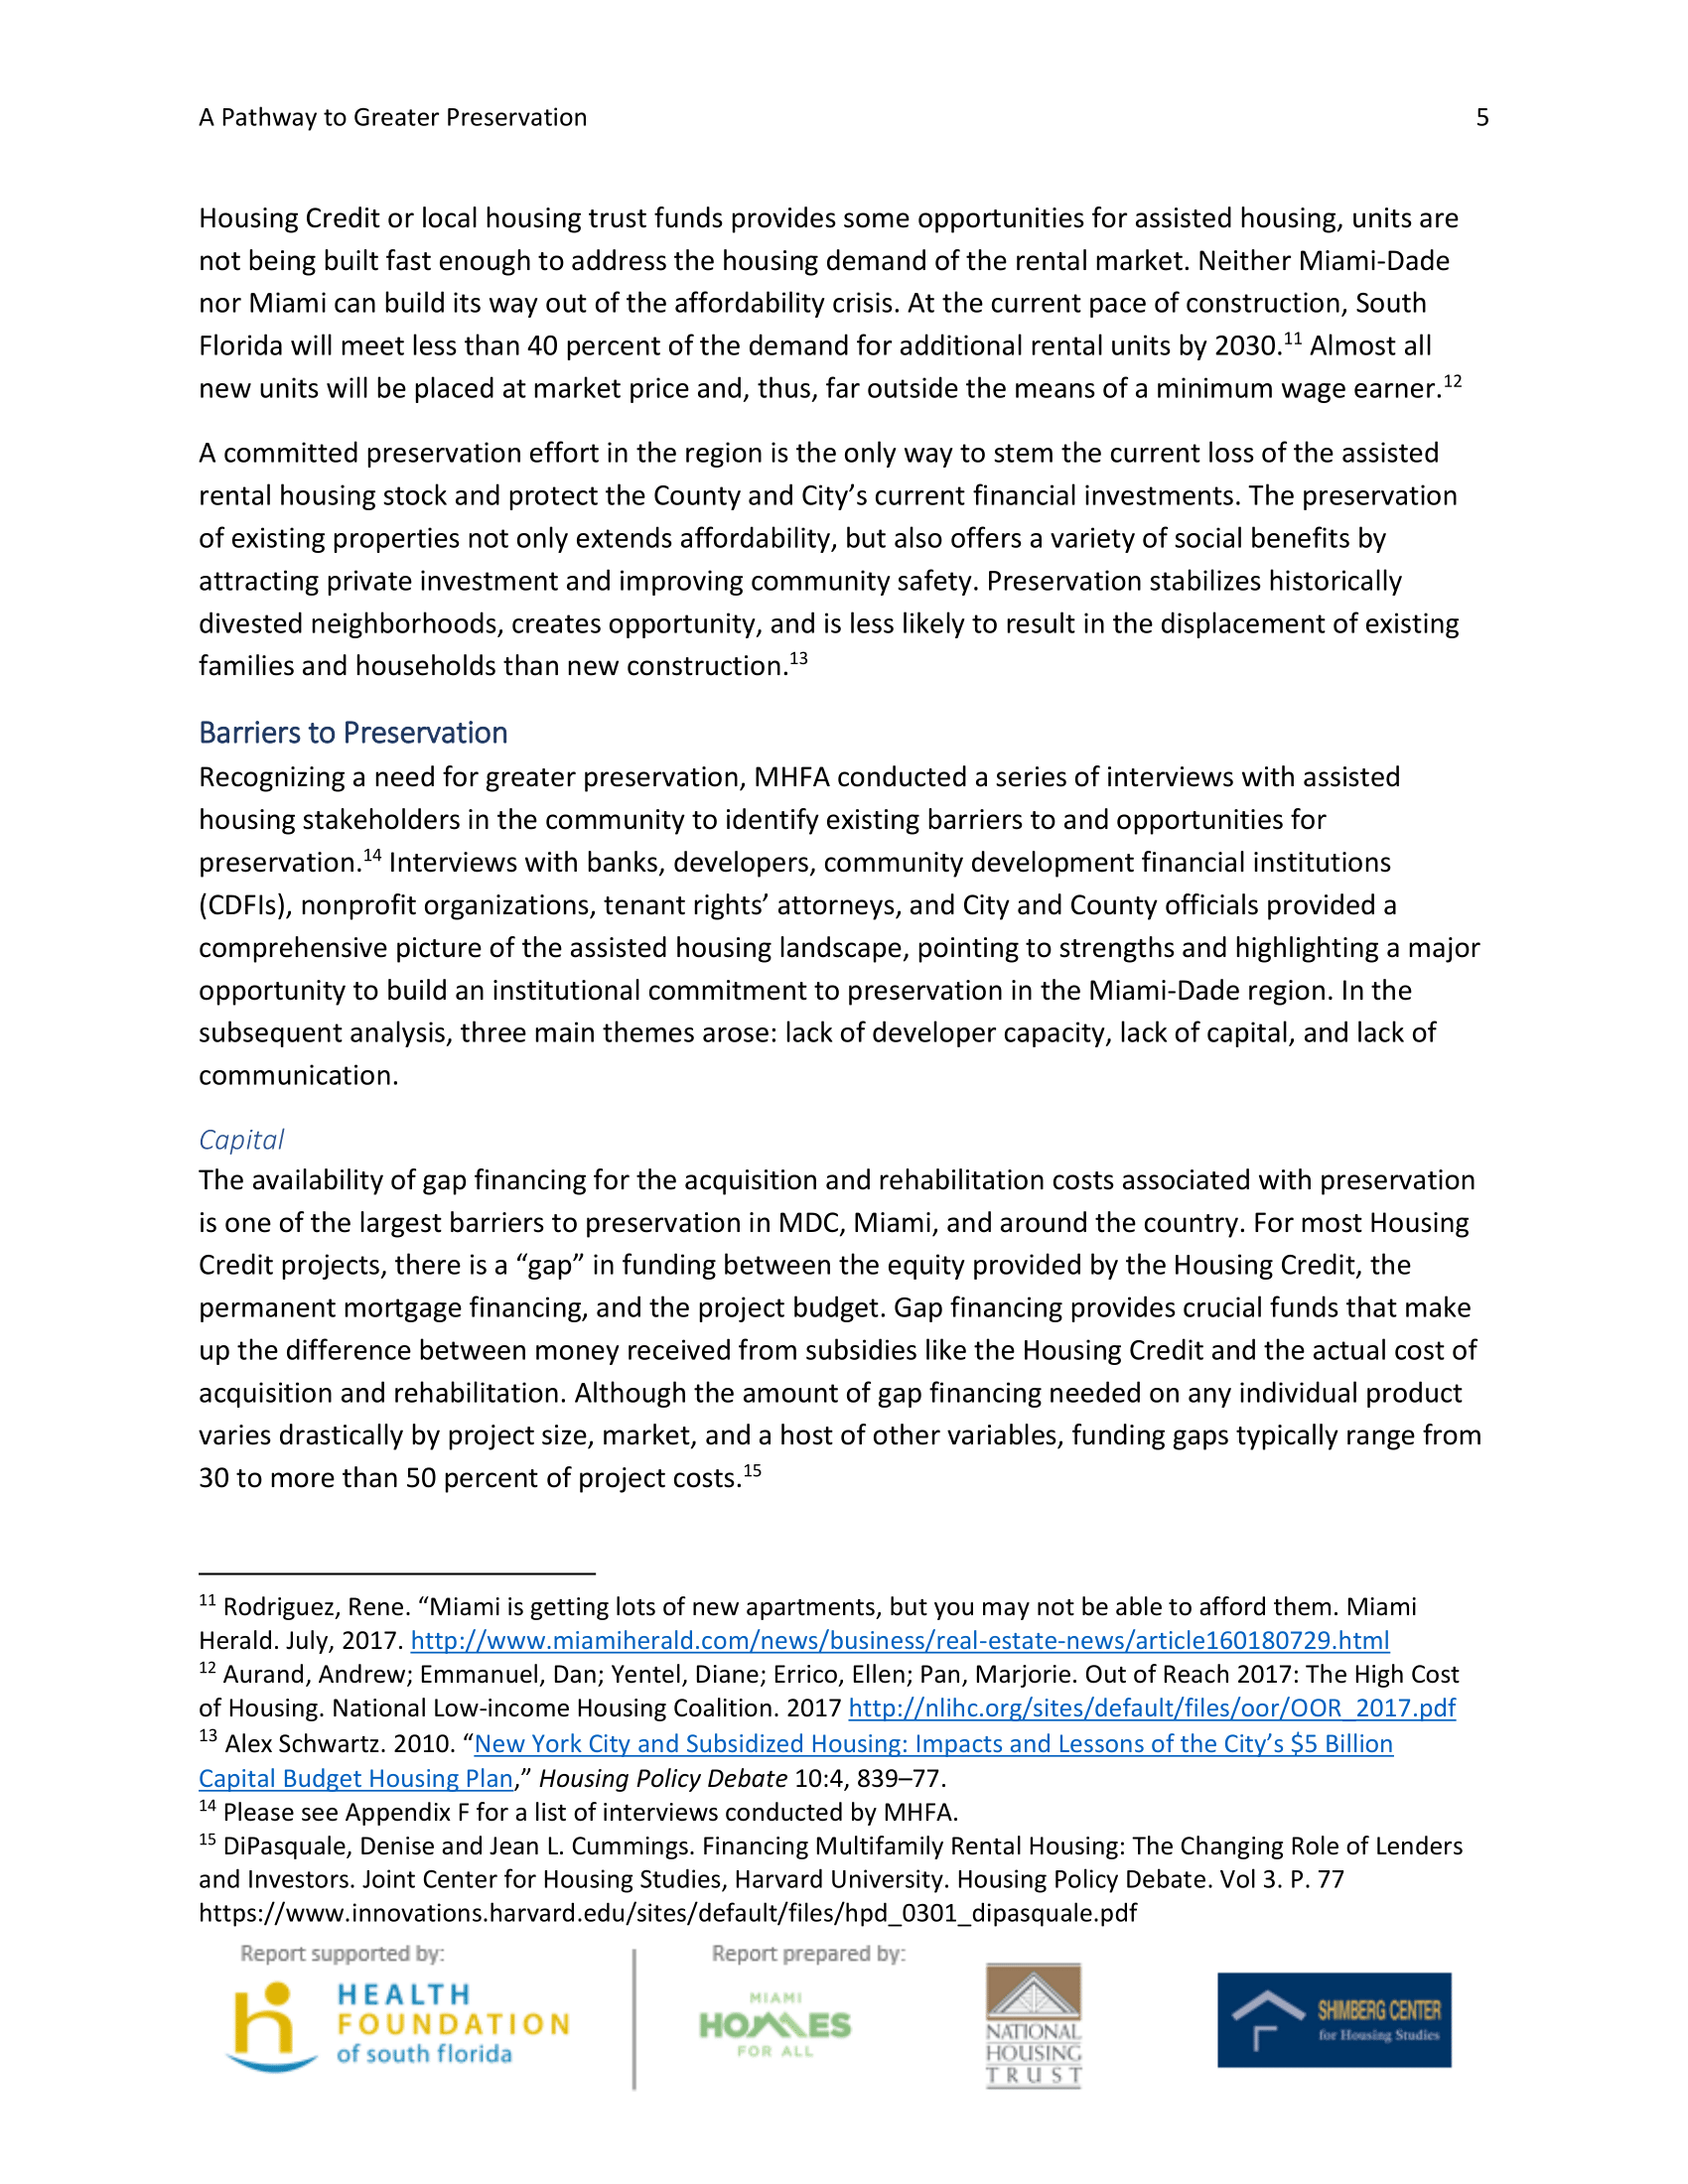 A Pathway to Greater Preservation - February 2018-13.png